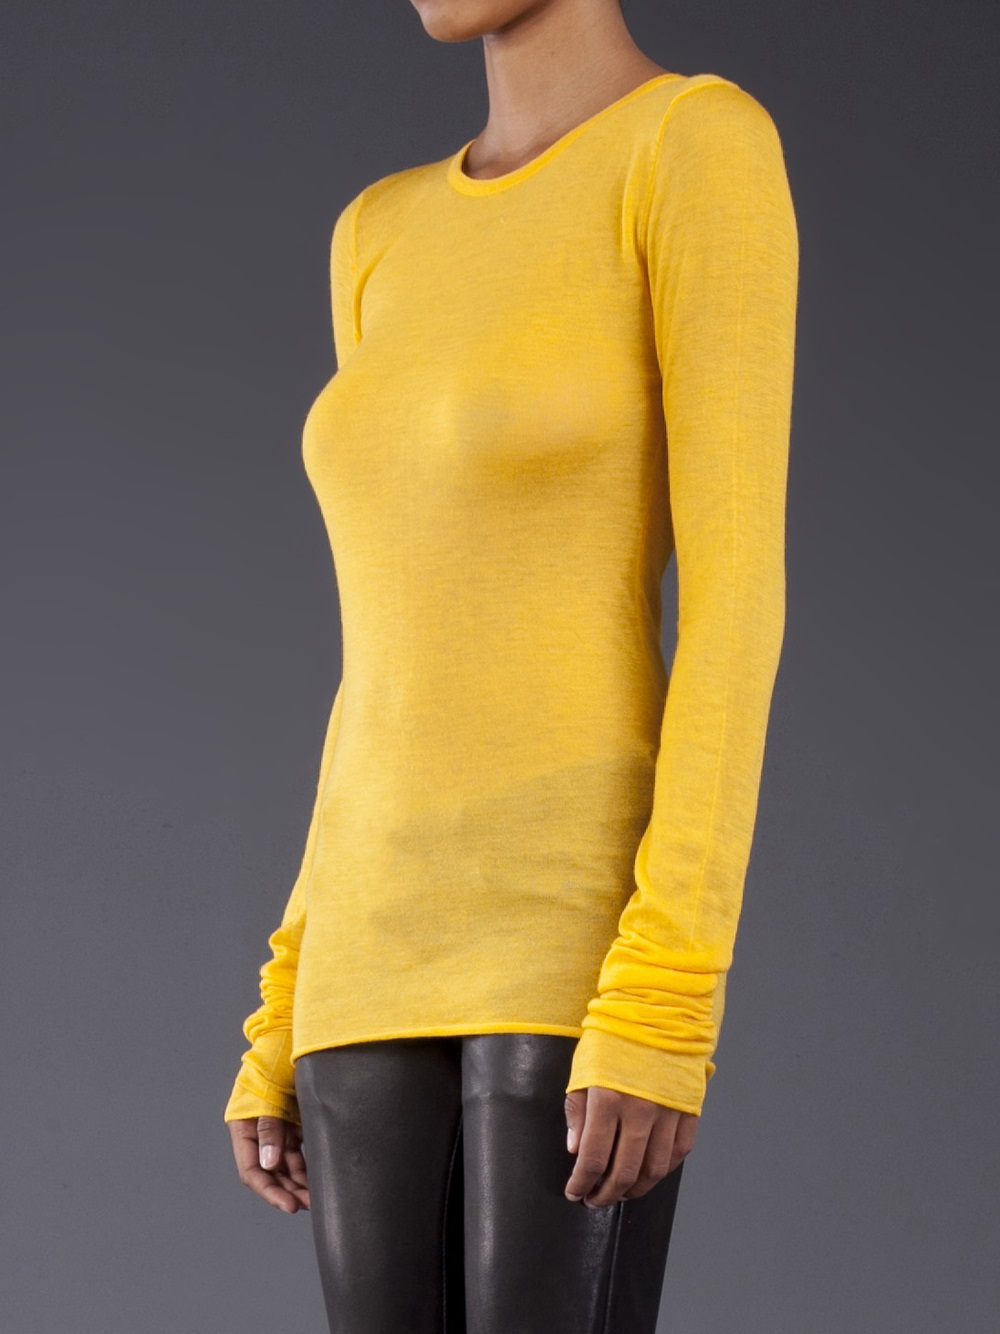 Jean colonna Cashmere Sweater in Yellow | Lyst